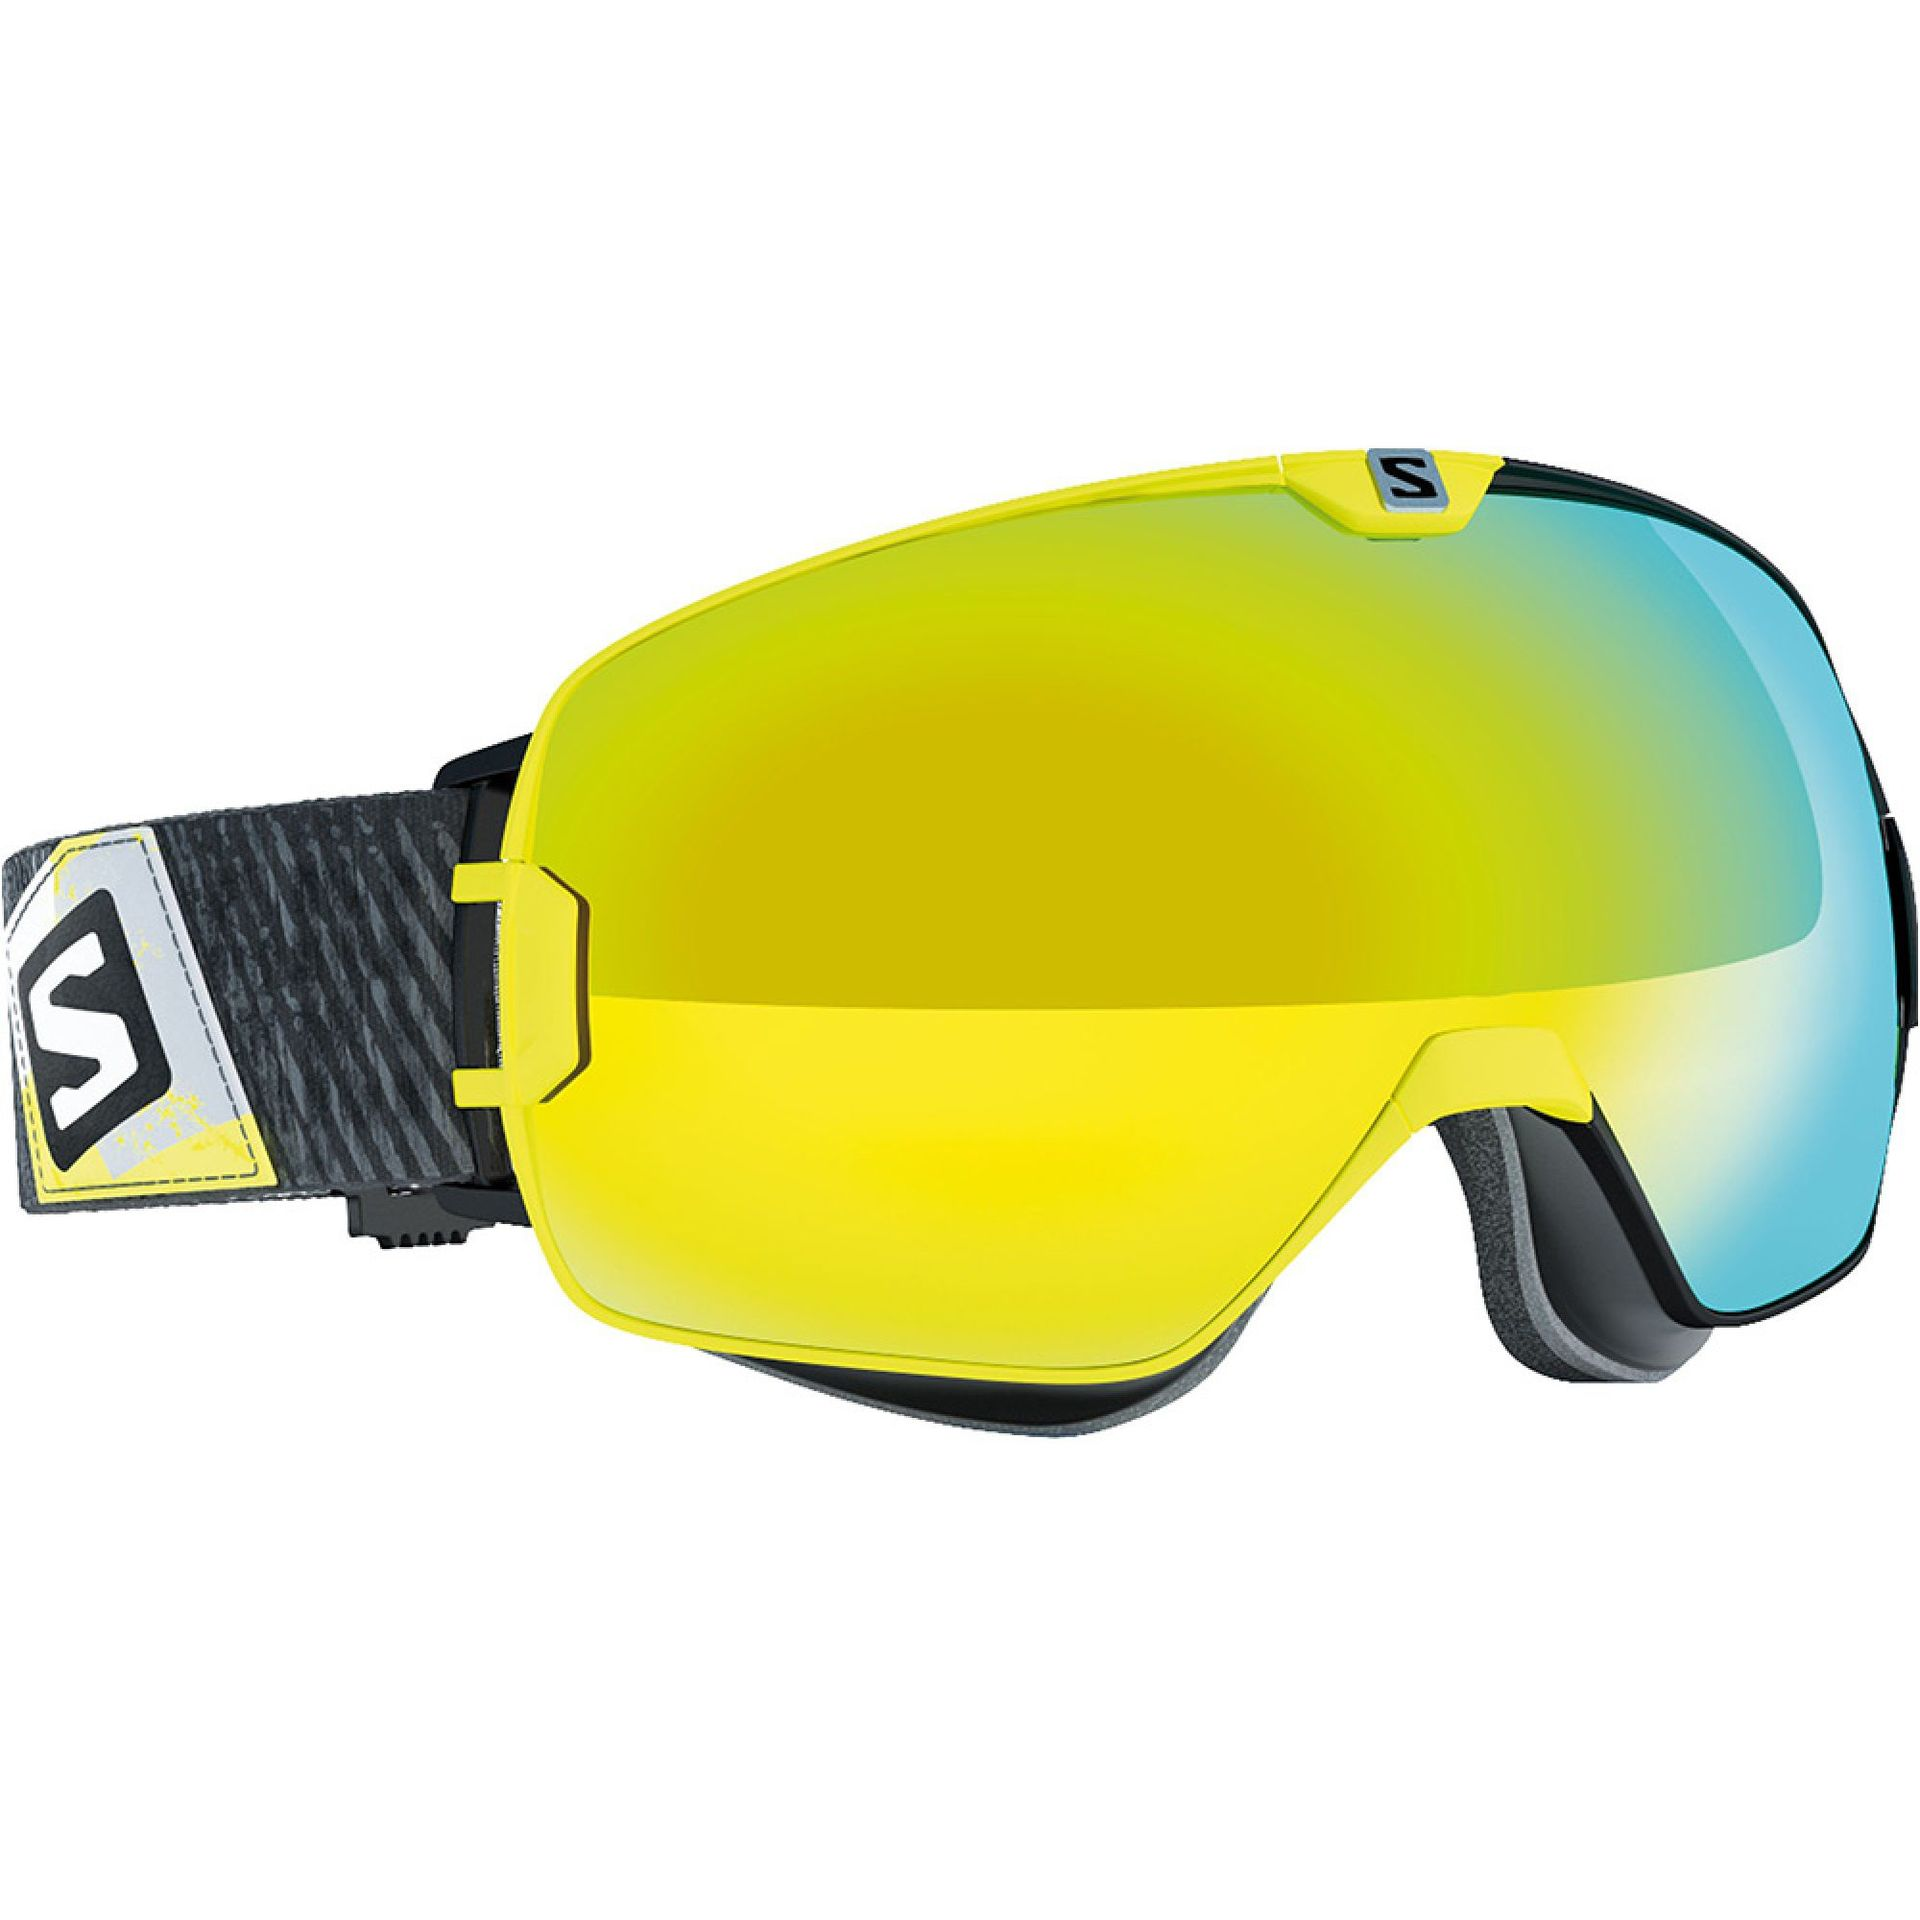 GOGLE SALOMON XMAX BLACK YELLOW|SOLAR YELLOW 1